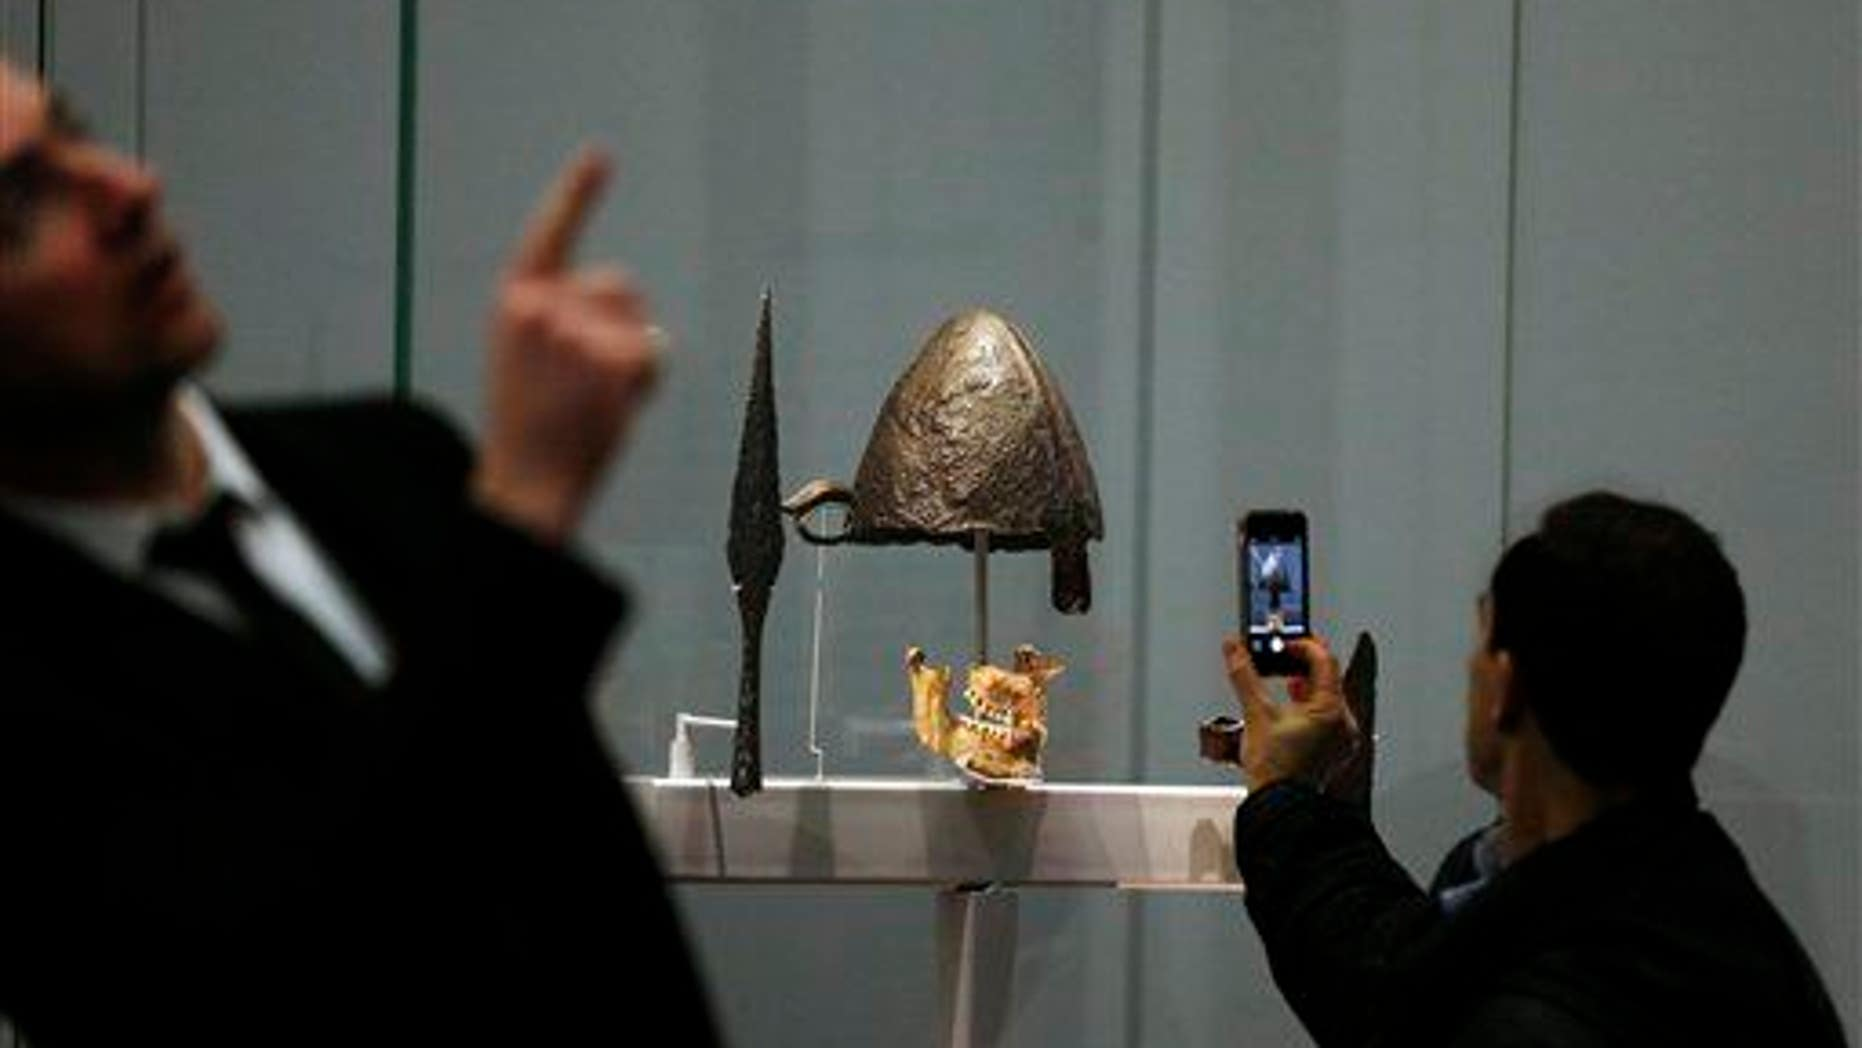 A visitor takes pictures at a display of helmets and weapons at an exhibition entitled 'Vikings: Life and Legend' at the British Museum in central London, Tuesday, March 4, 2014.